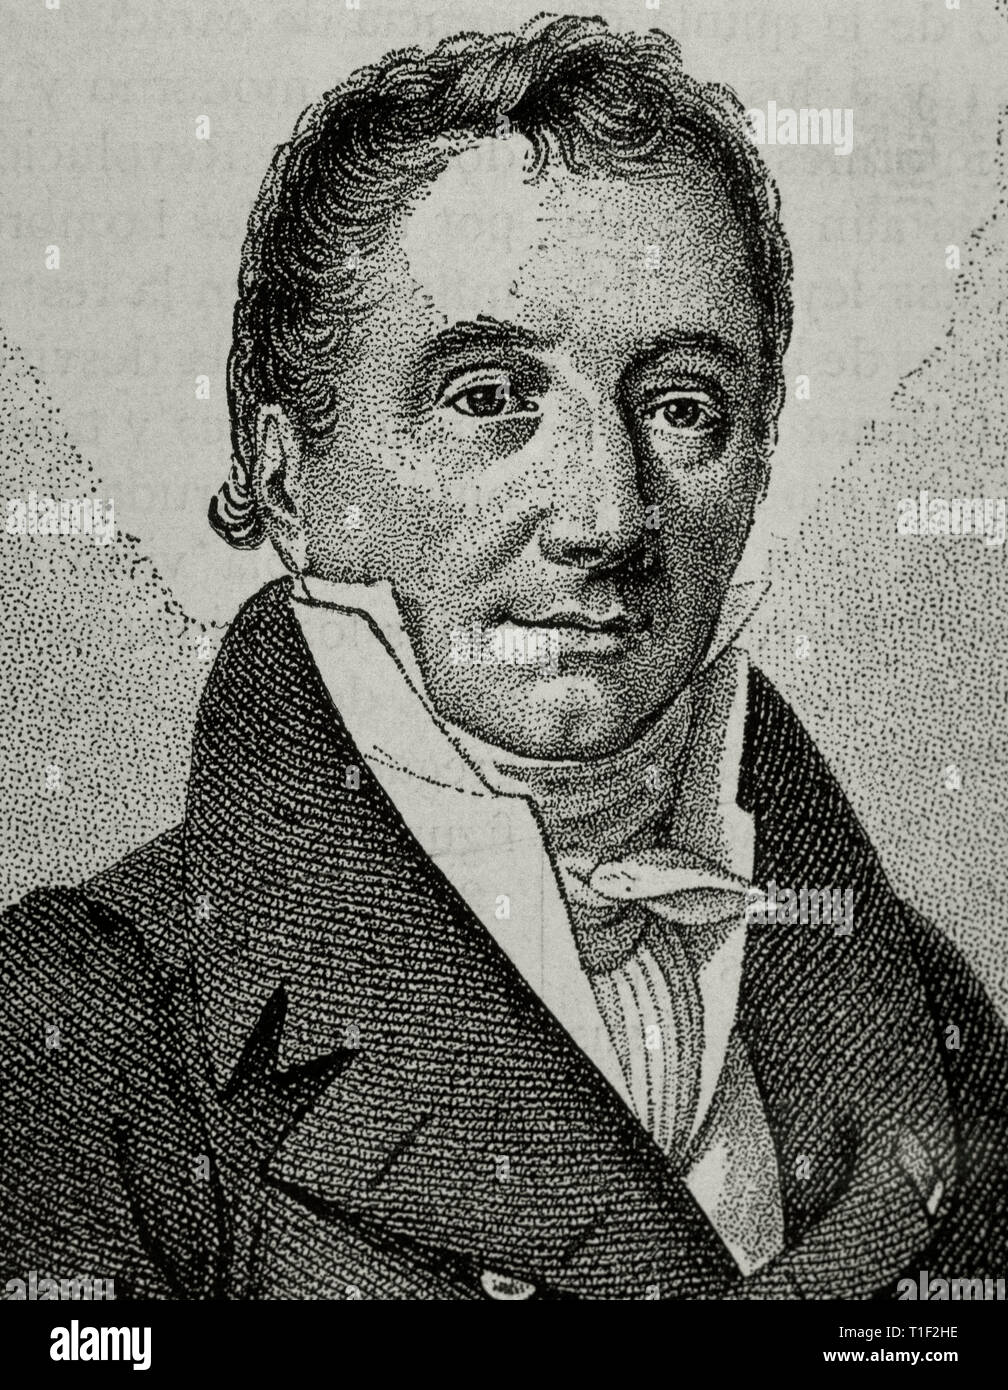 Pierre Paul Royer-Collard (1763-1845). Politician and French philosopher. Engraving. - Stock Image